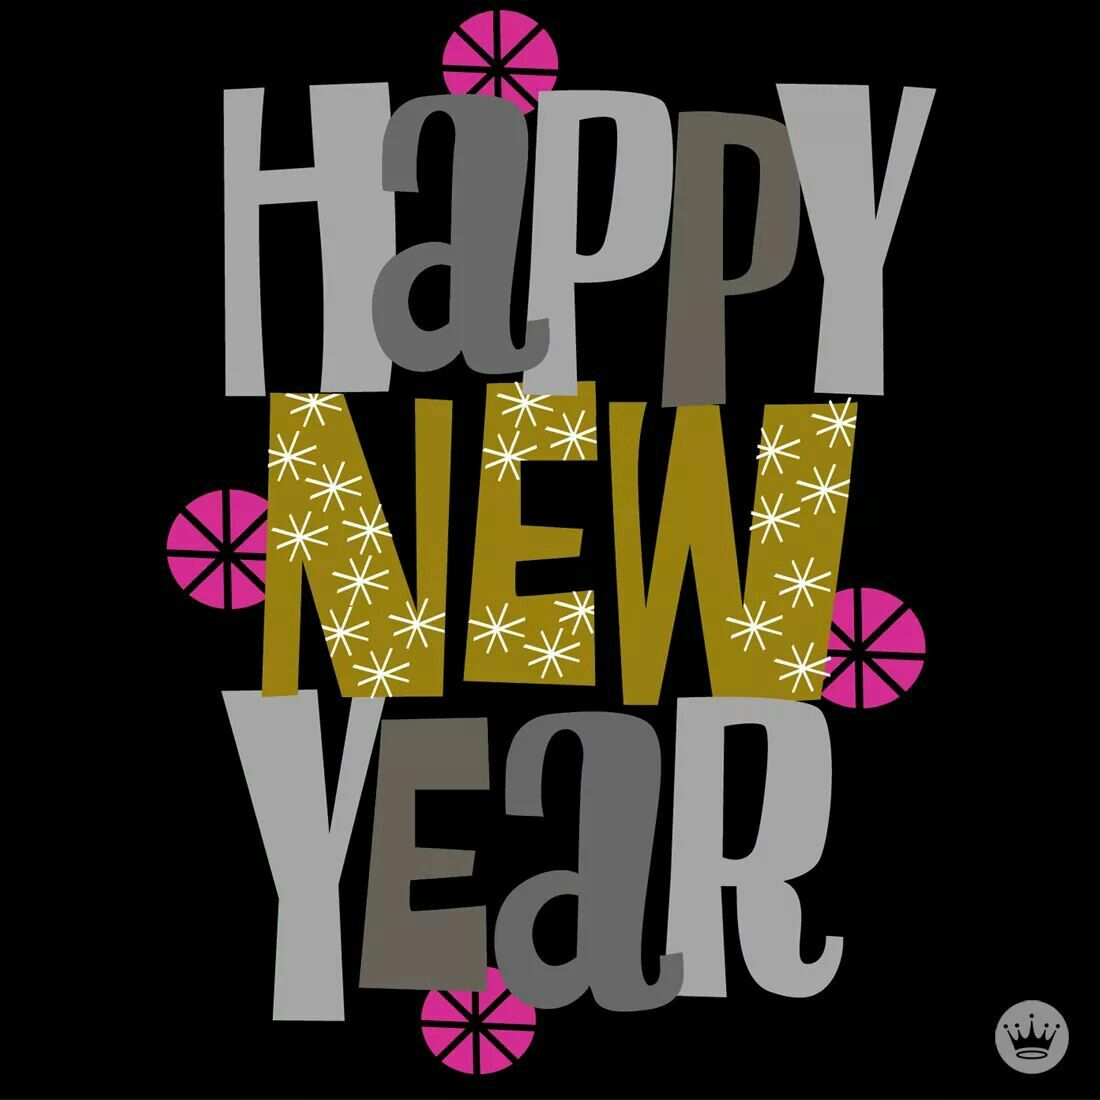 Pin by Diana Rogers on Hallmark cards Happy new year